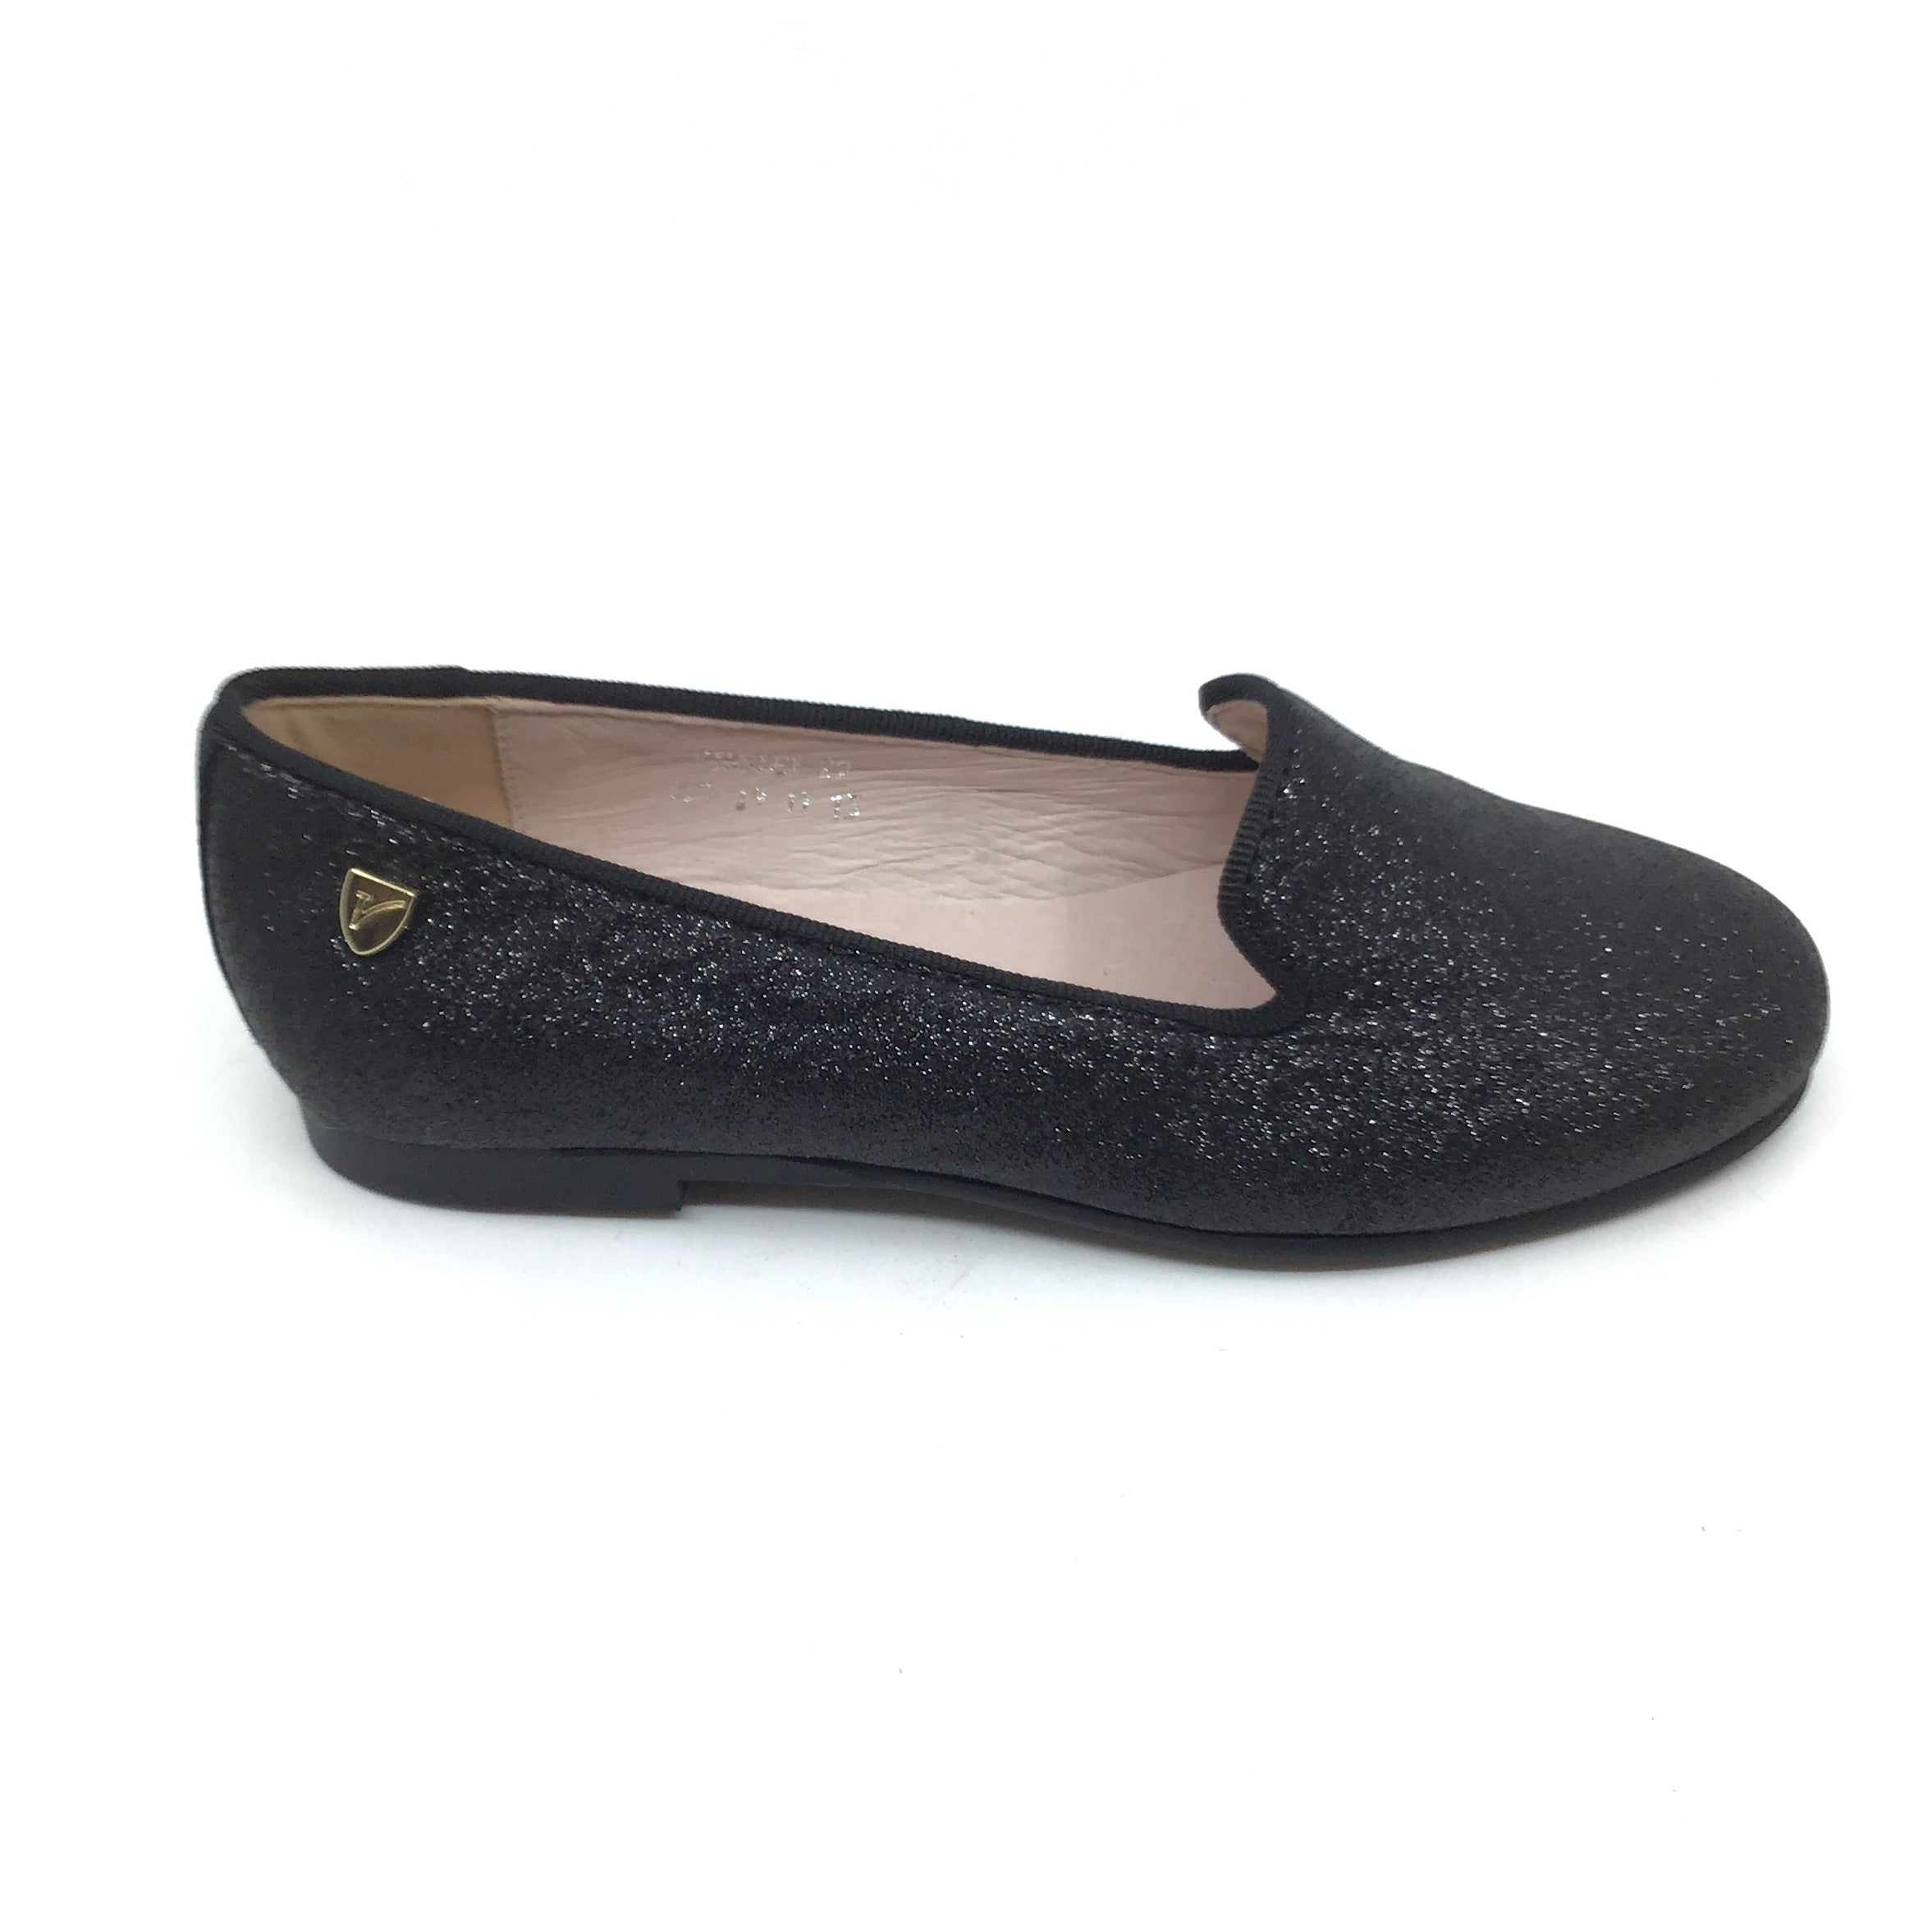 Venettini Black Glitter Slip On